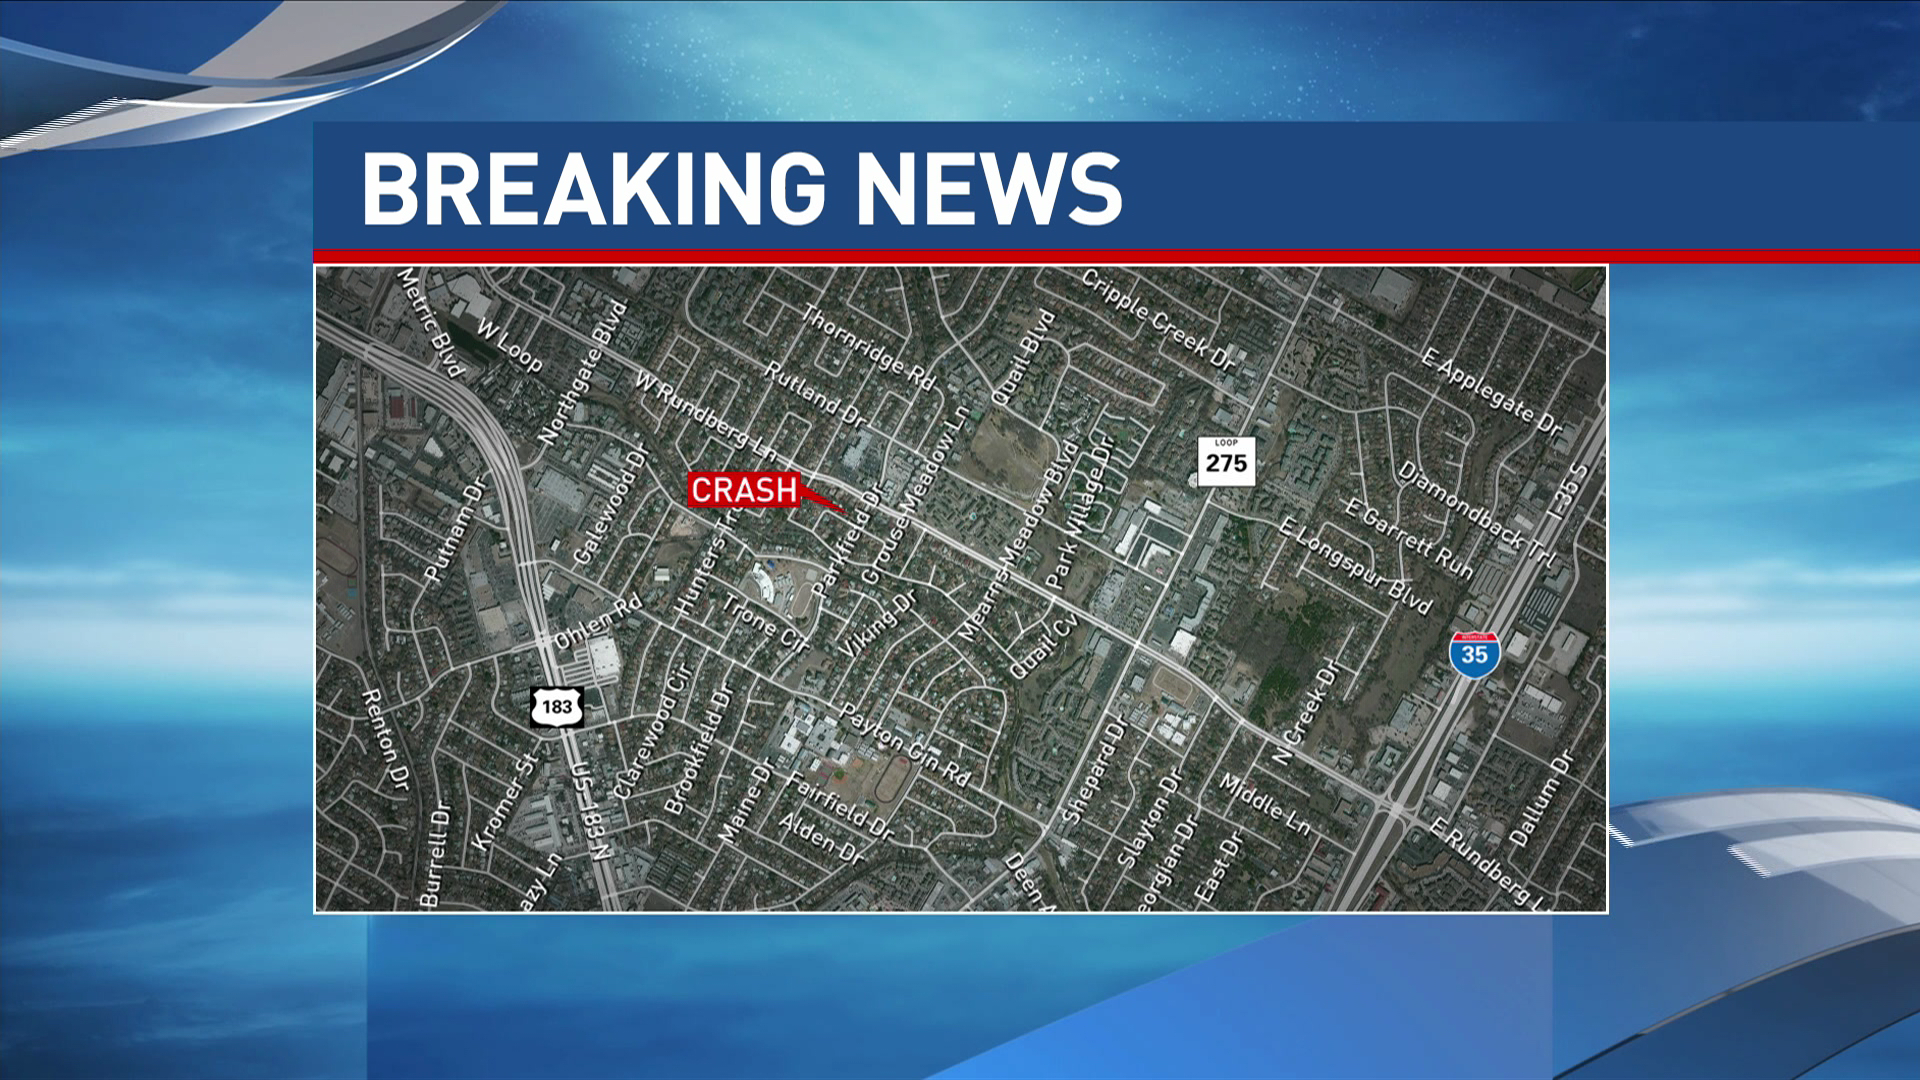 A pedestrian was killed Tuesday evening in North Austin after being hit by a vehicle, EMS officials say. (CBS Austin)